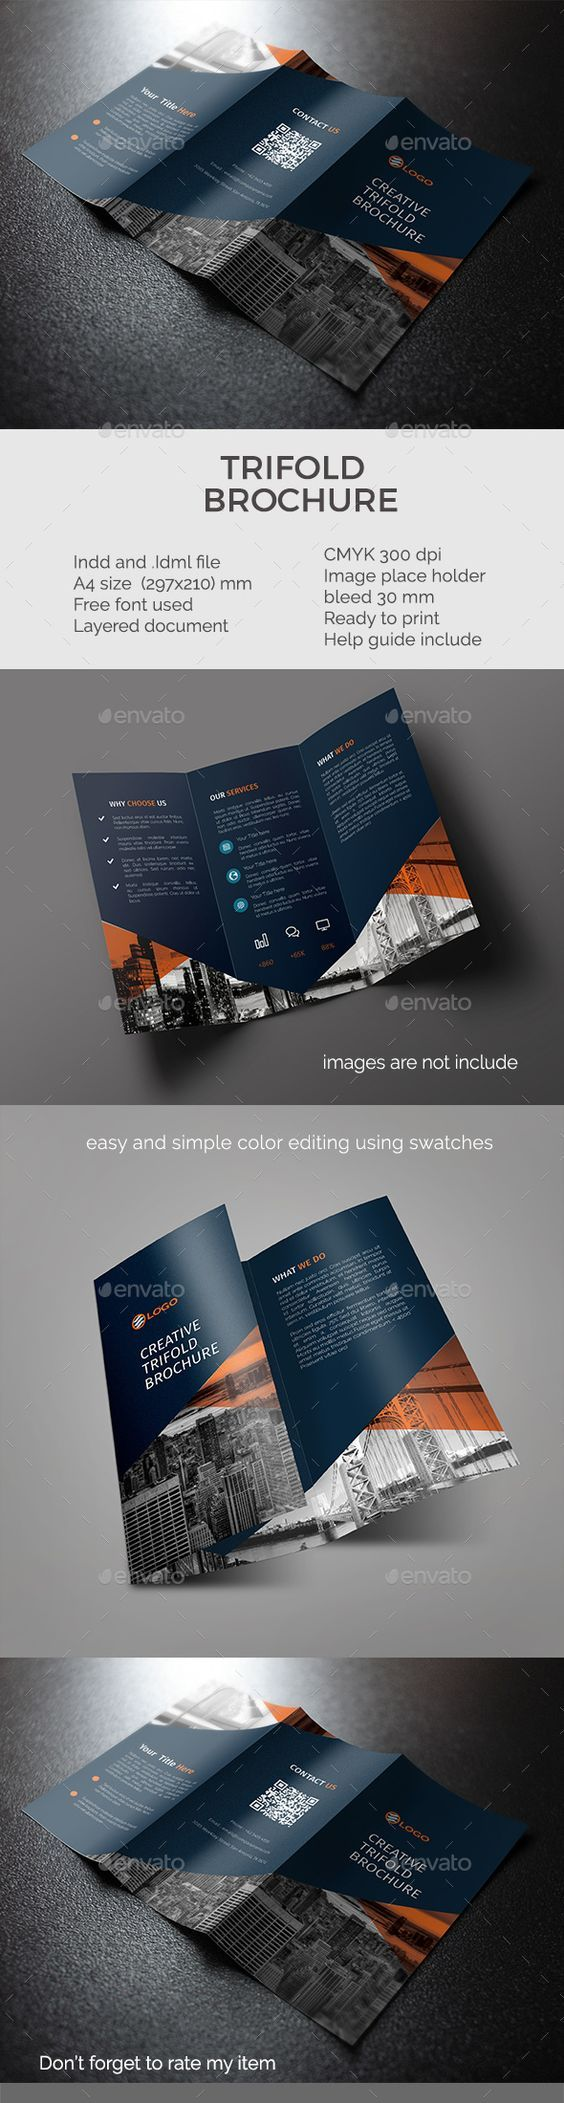 Simple Publisher App To Create And Print Grayscale Brochures And